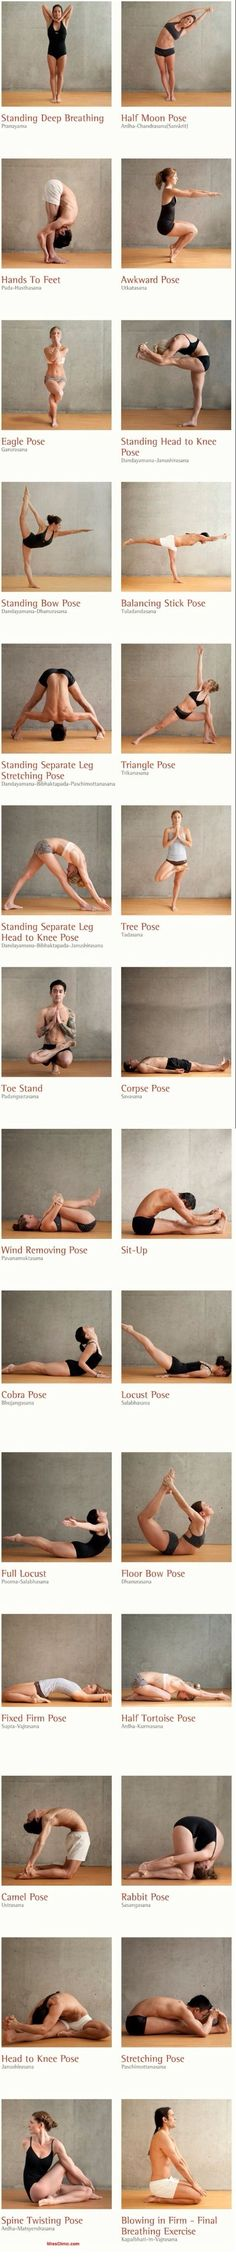 This is exactly my yoga regimen! From Raquel: Total Beauty and Fitness